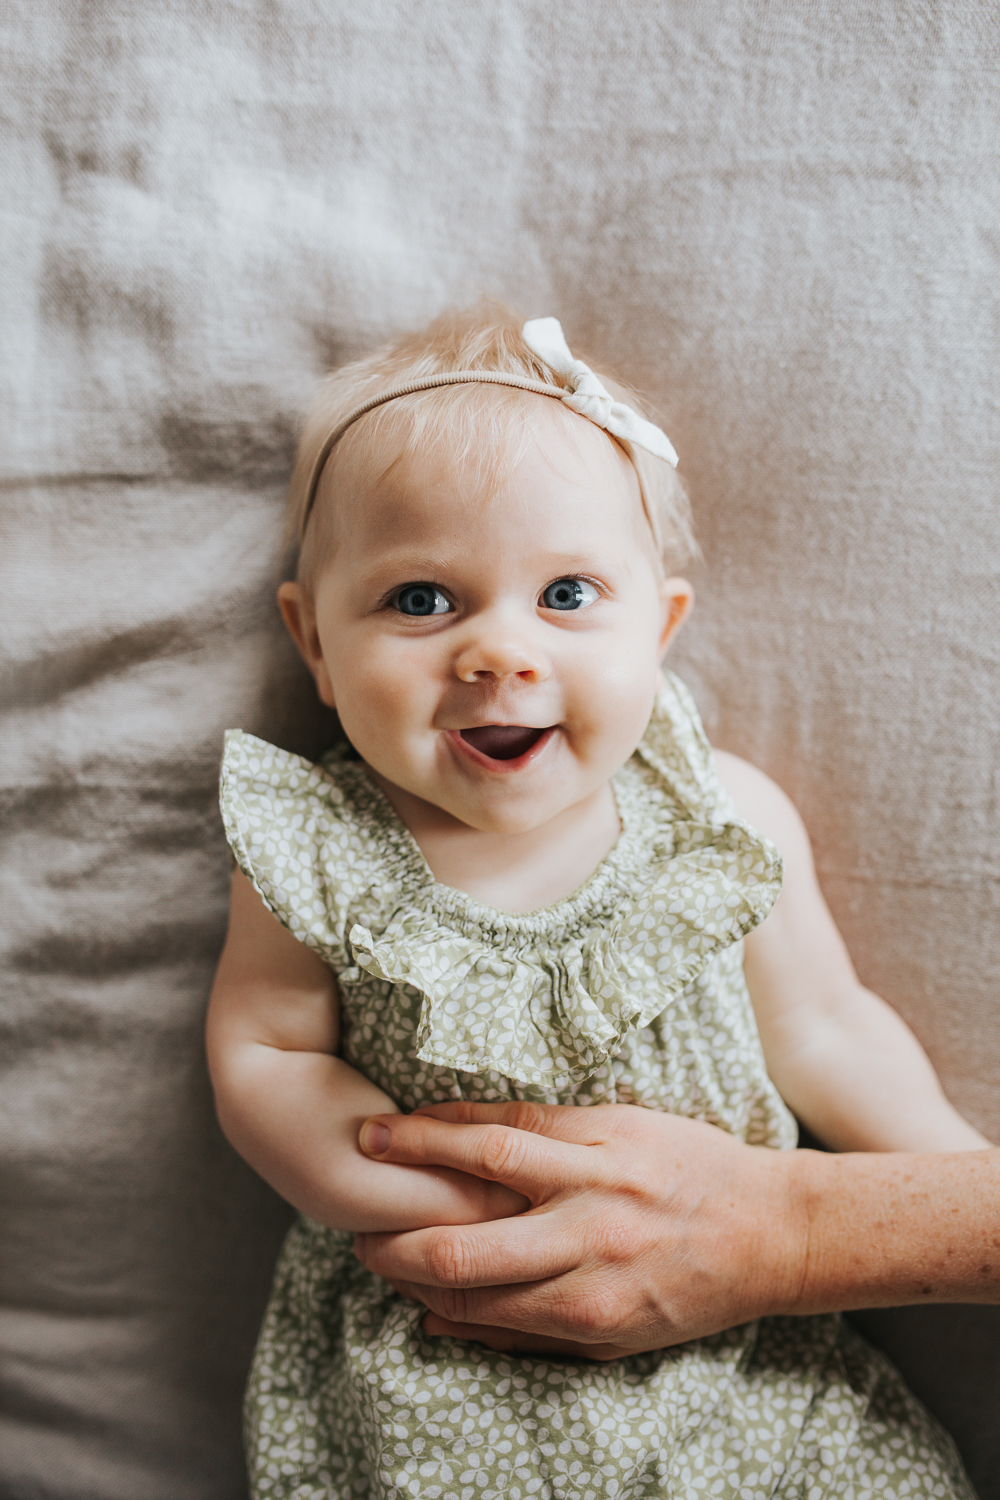 6 month old baby girl with blonde hair and blue eyes lying on bed smiling - Barrie Family Lifestyle Photography